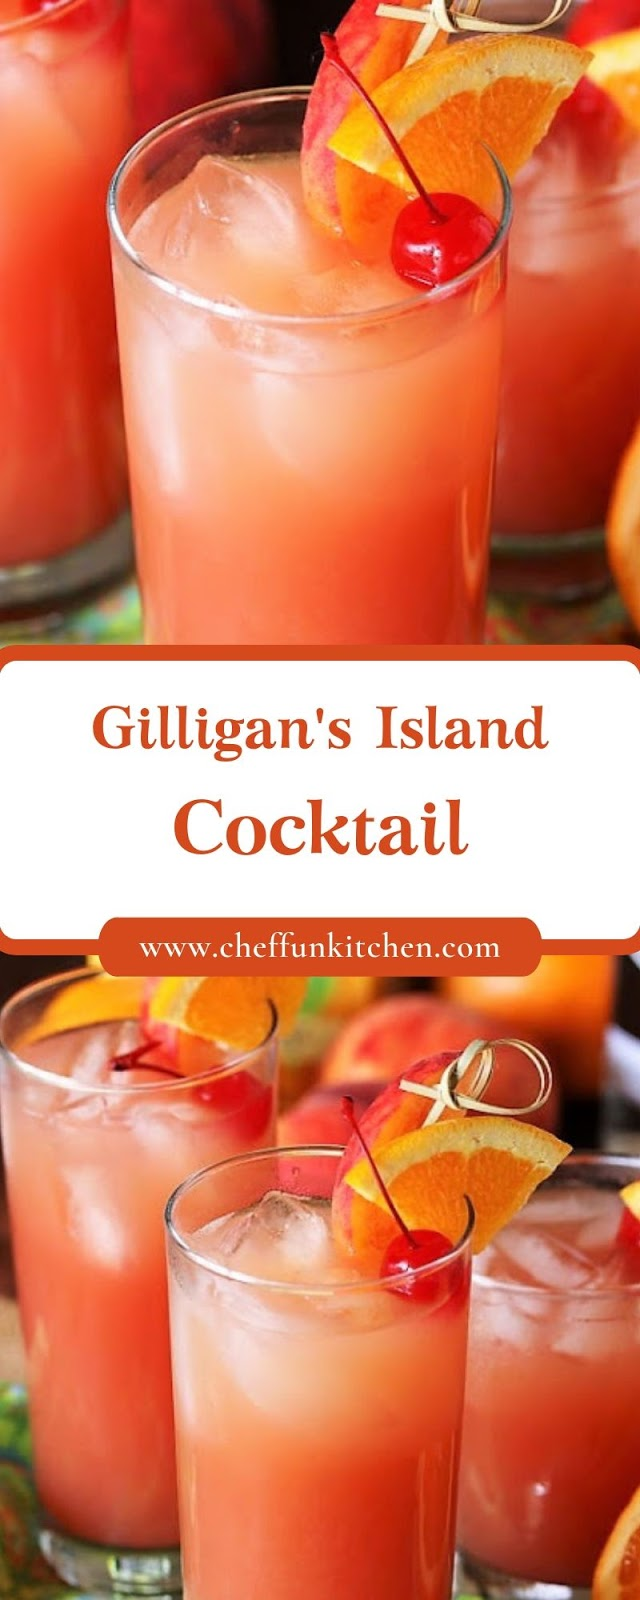 Gilligan's Island Cocktail